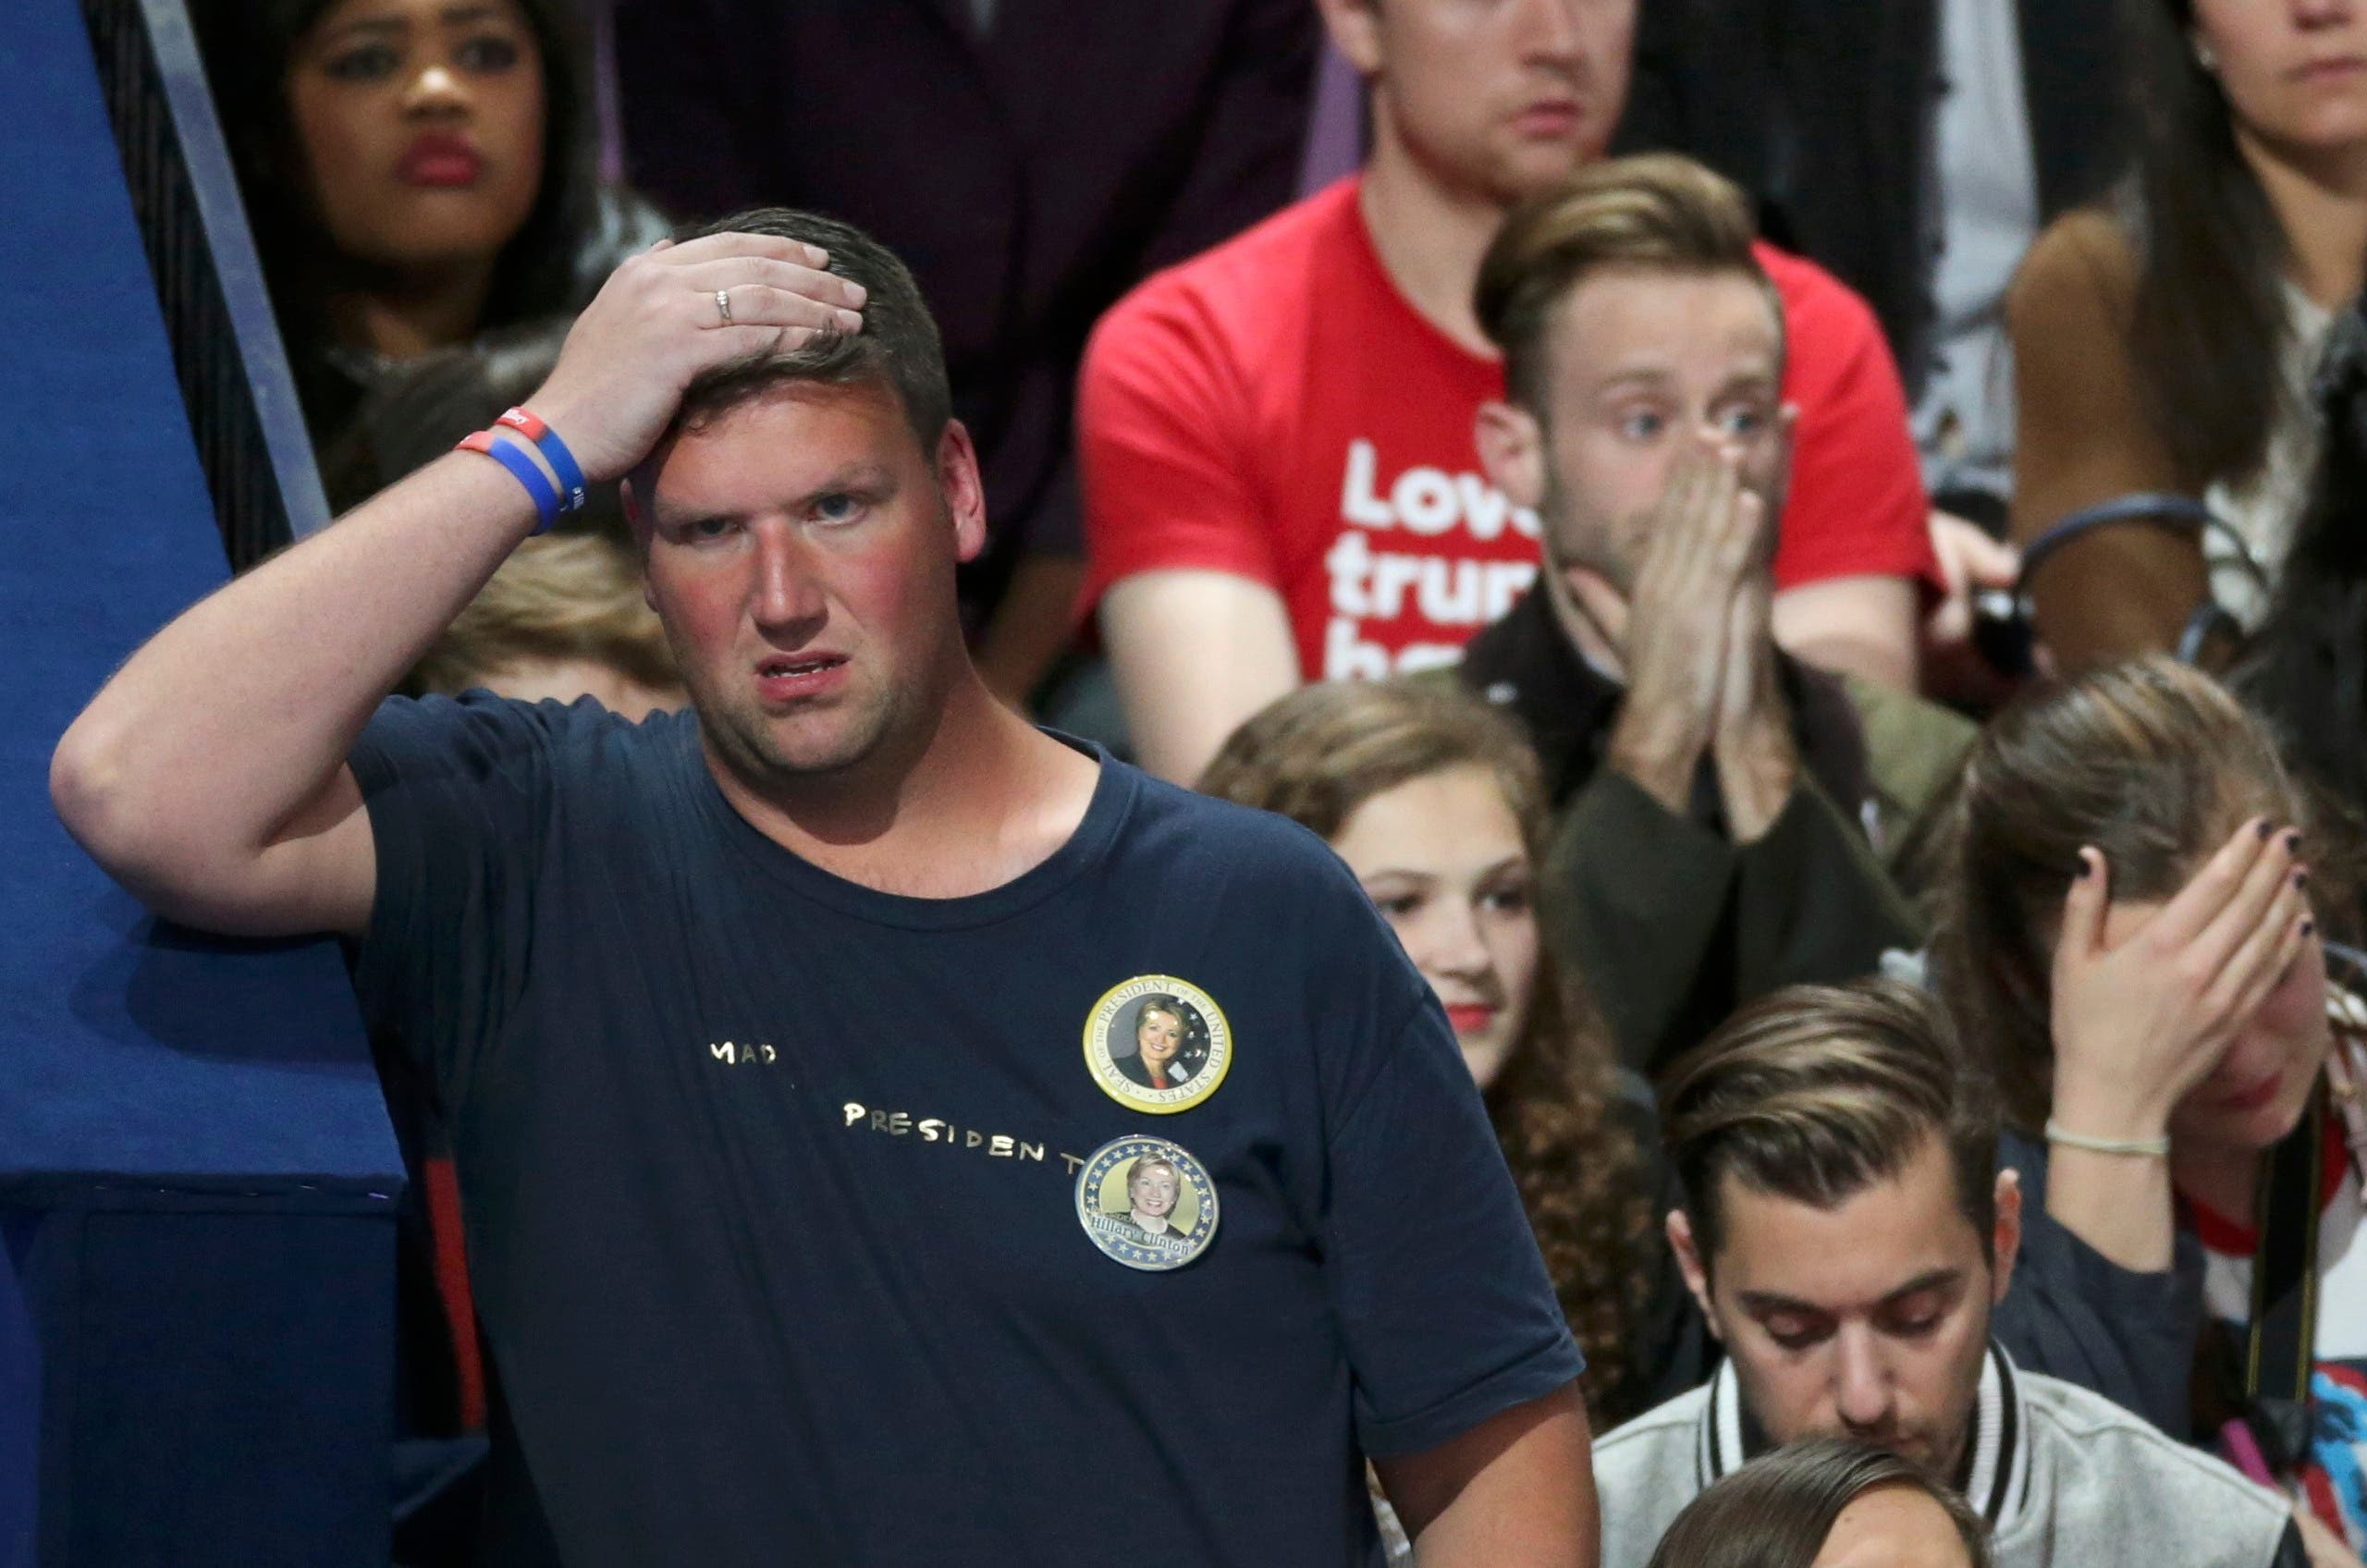 Supporters of U.S. Democratic presidential nominee Hillary Clinton react at her election night rally in Manhattan, New York, U.S., November 8, 2016. (Reuters)